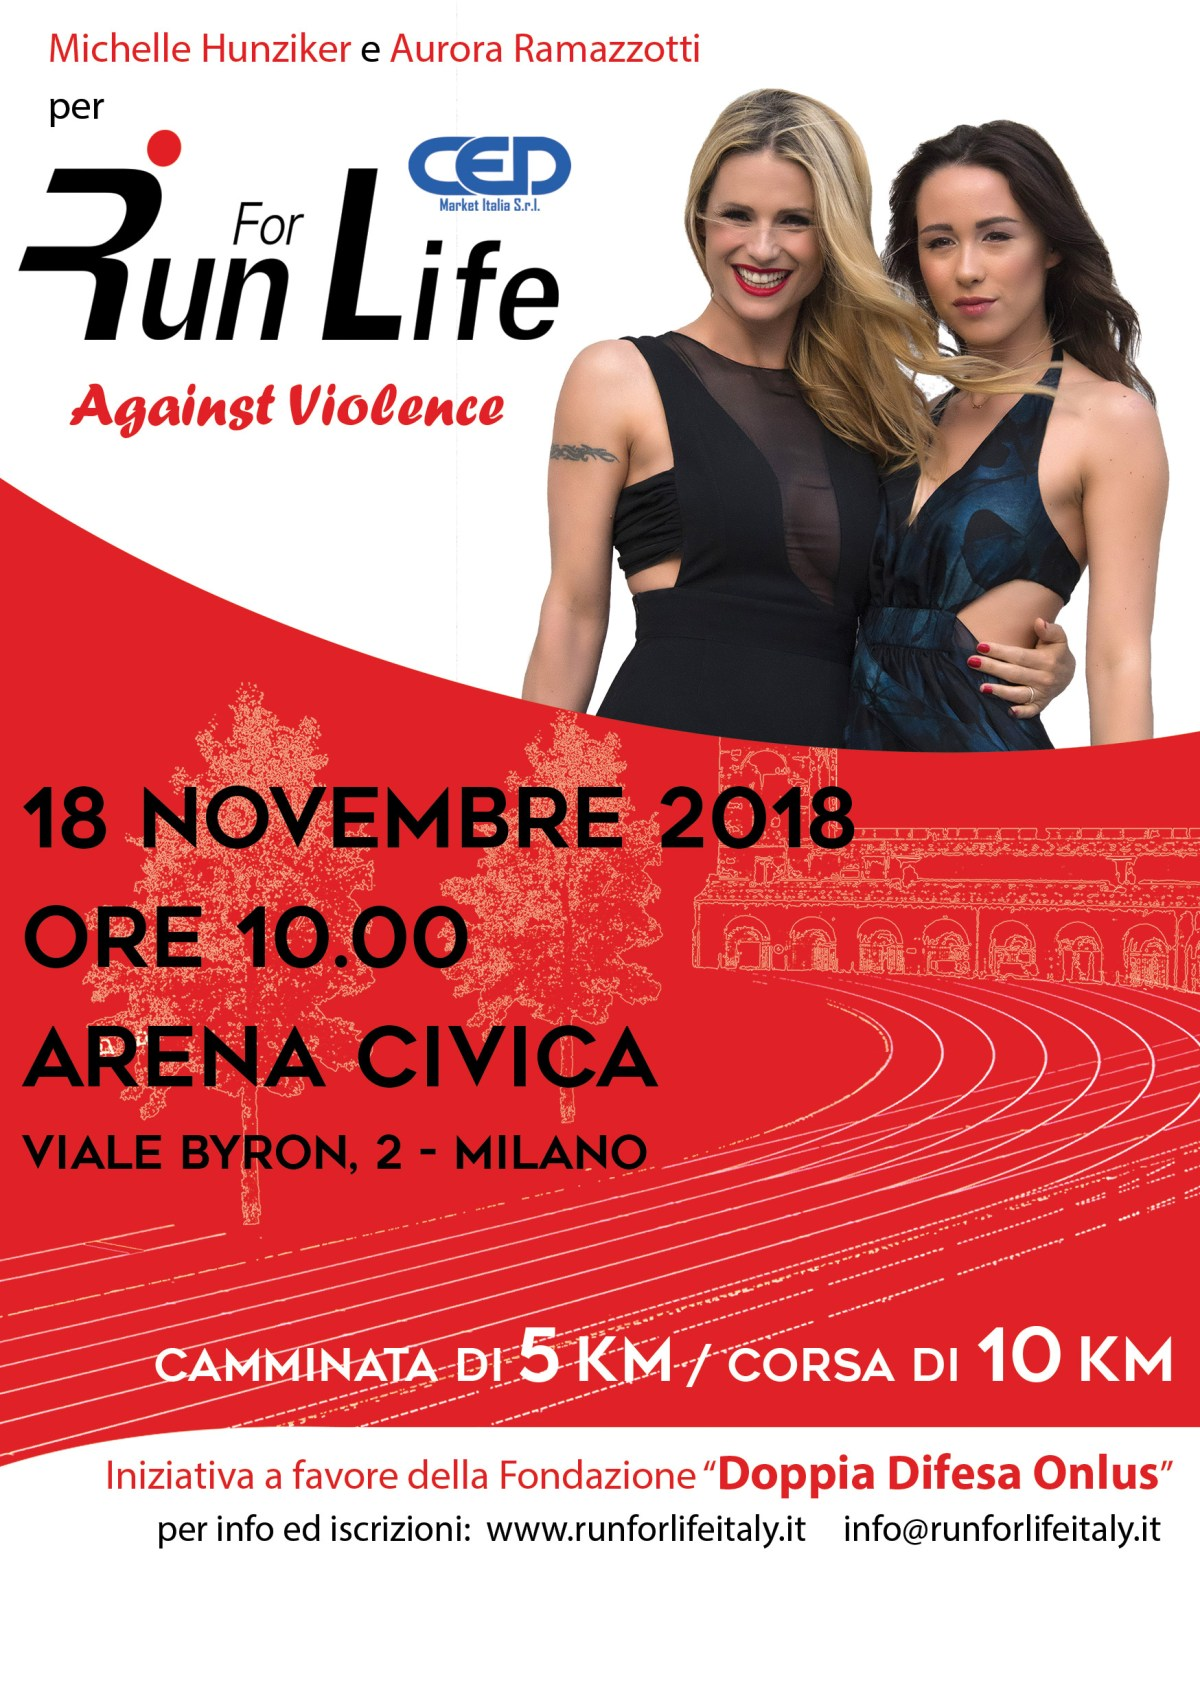 RUN FOR LIFE 2018 - against violence